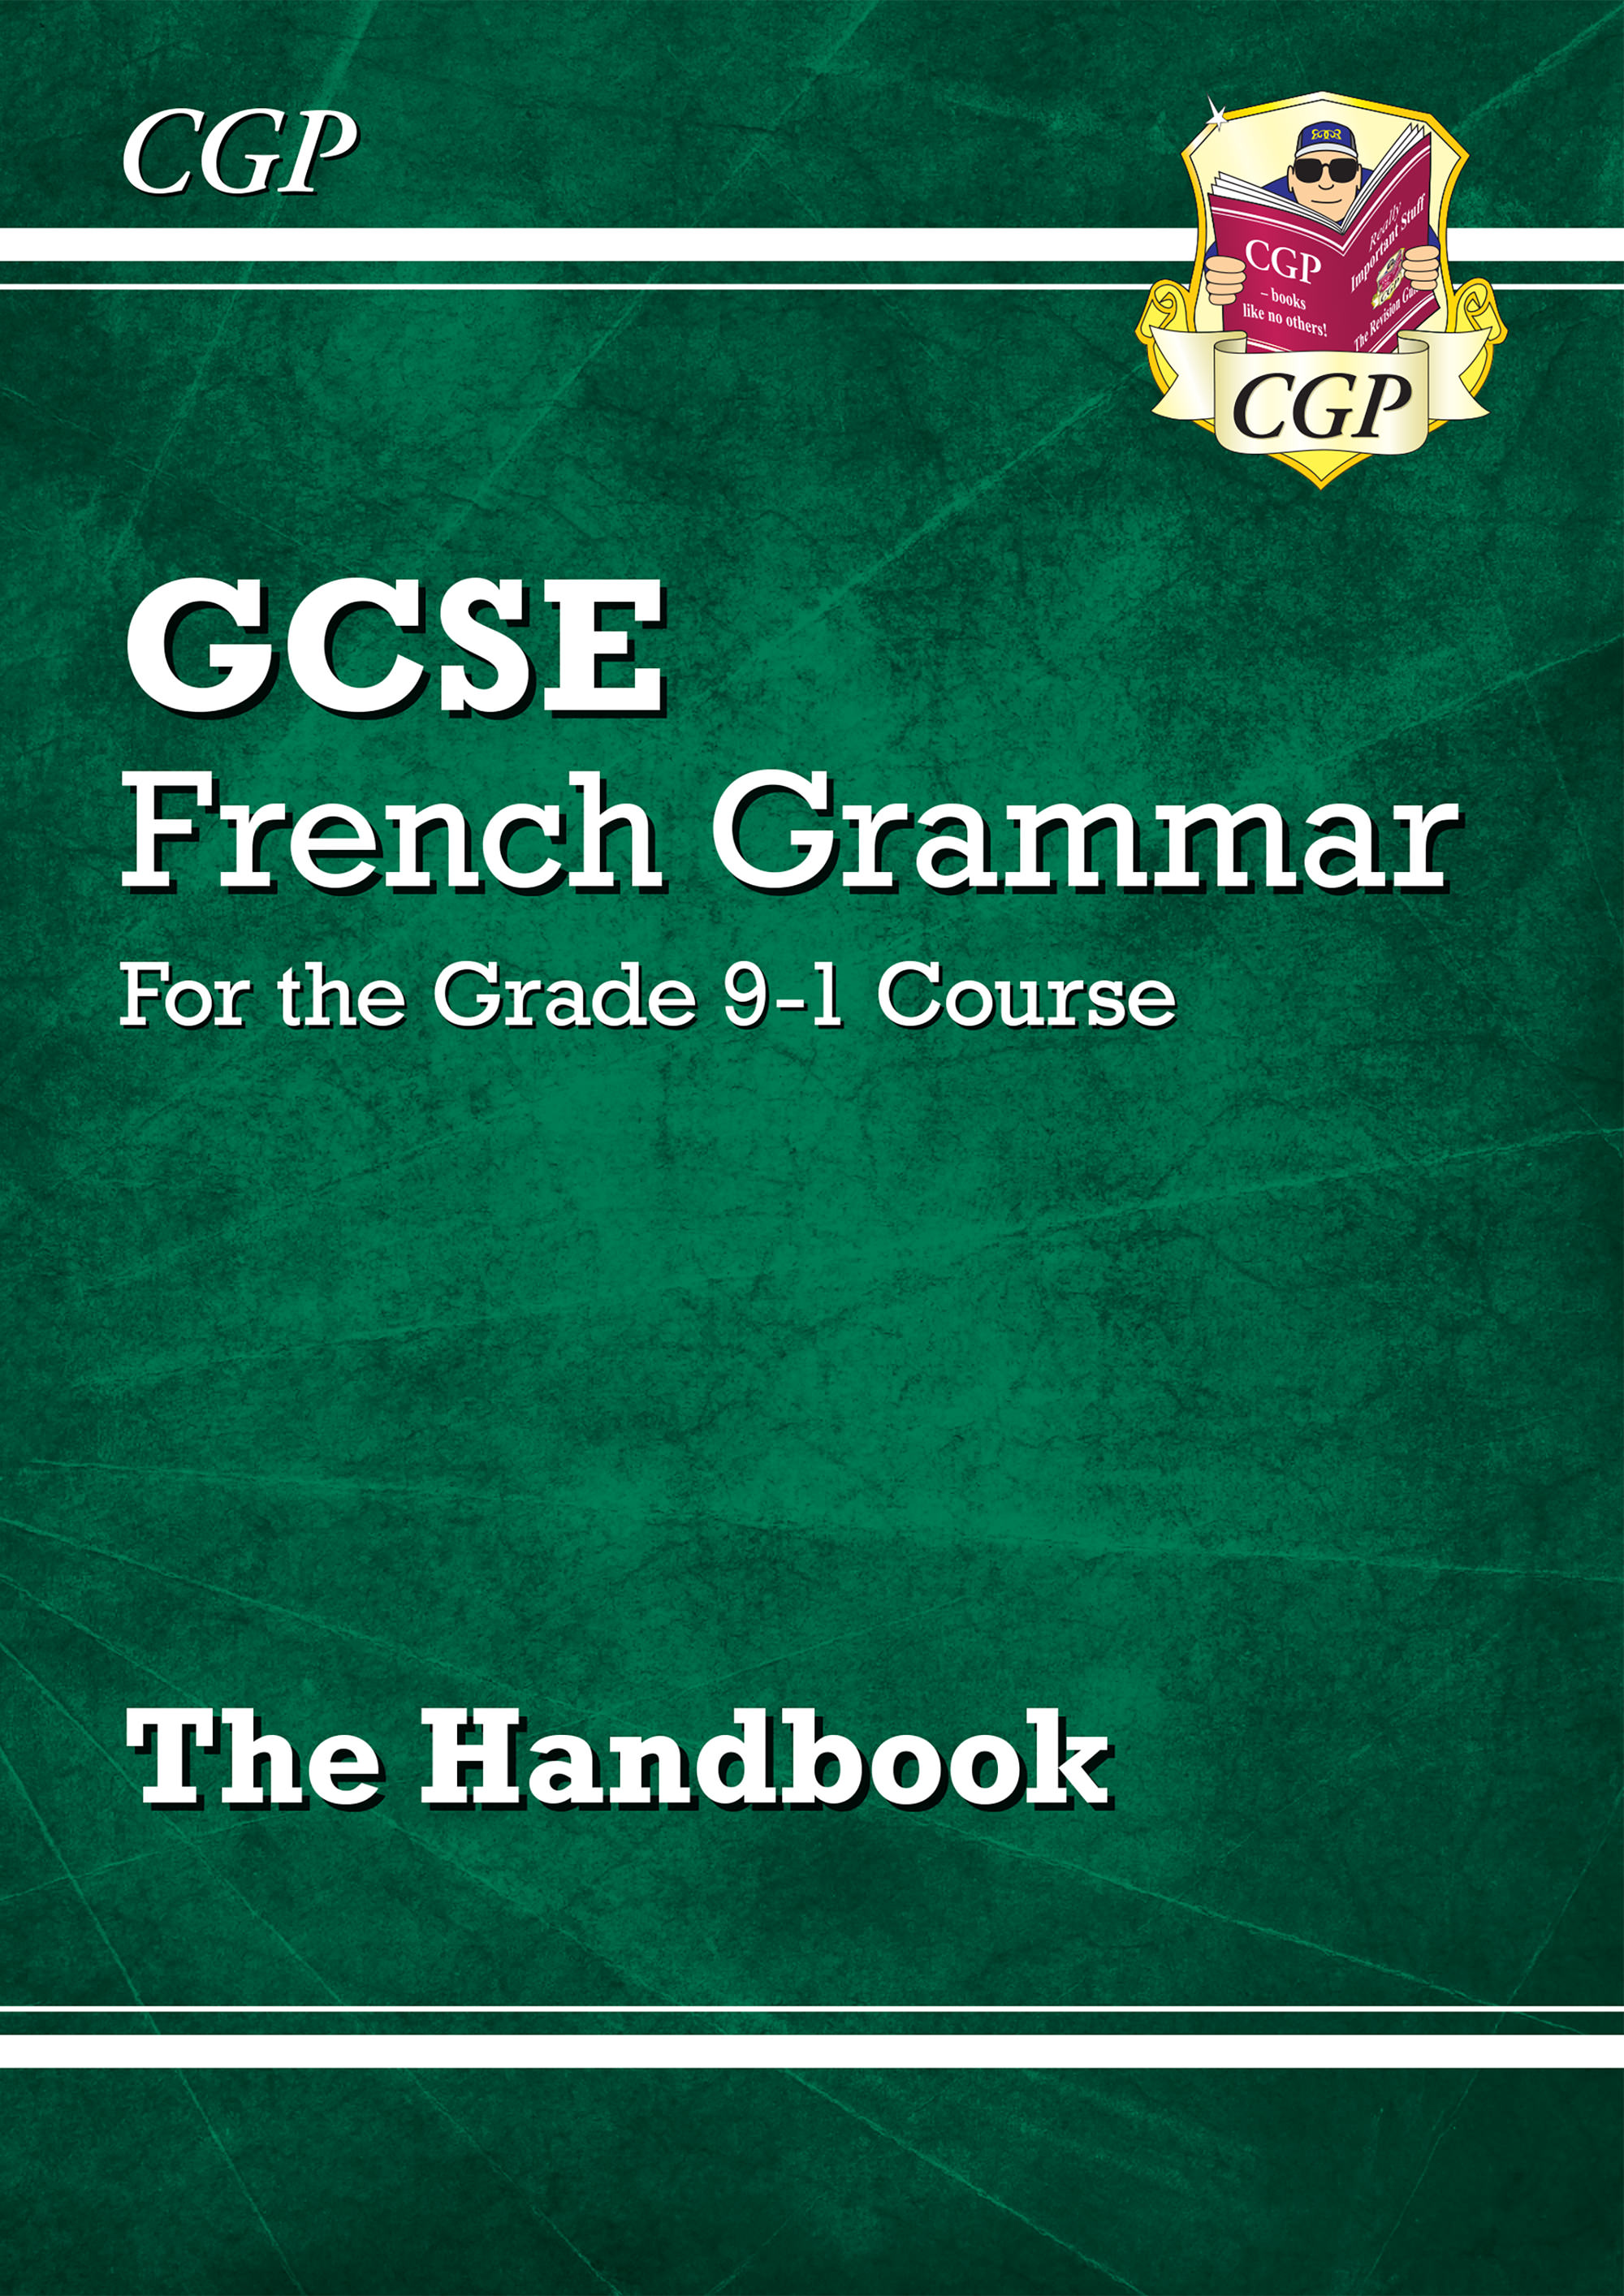 FGR41 - New French Grammar Handbook - for KS3 & Grade 9-1 GCSE